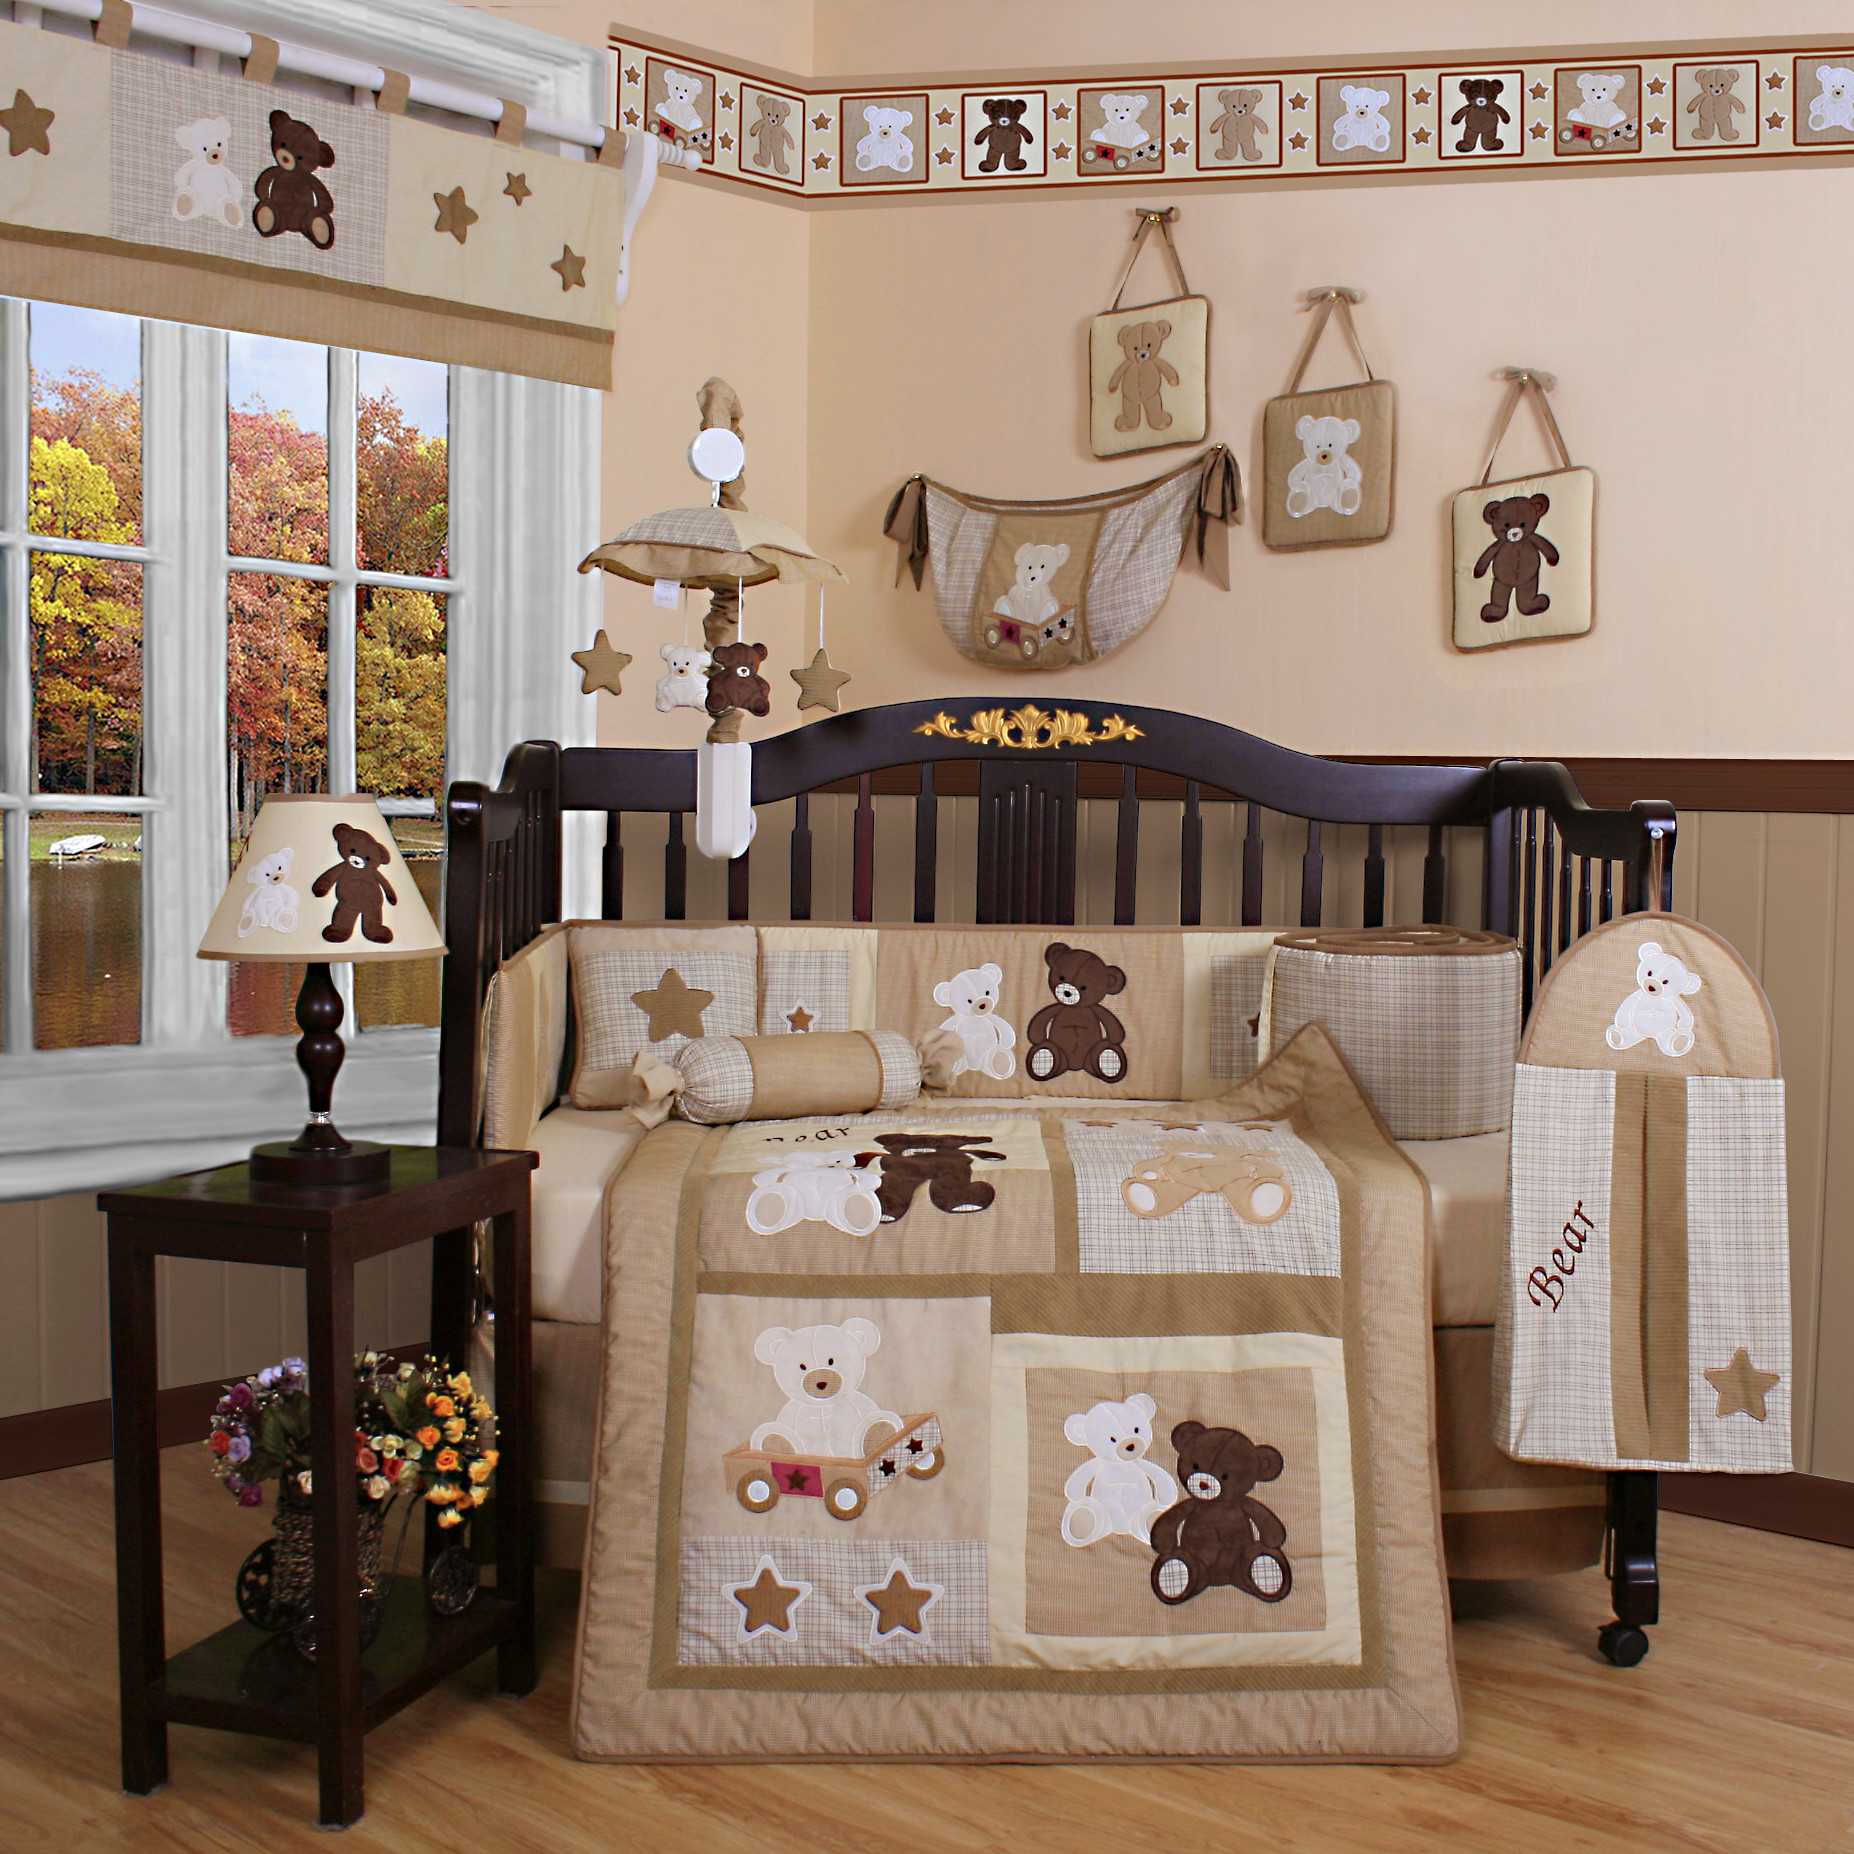 Baby Room Ideas Nursery Themes And Decor: Baby Boy Themes For Nursery